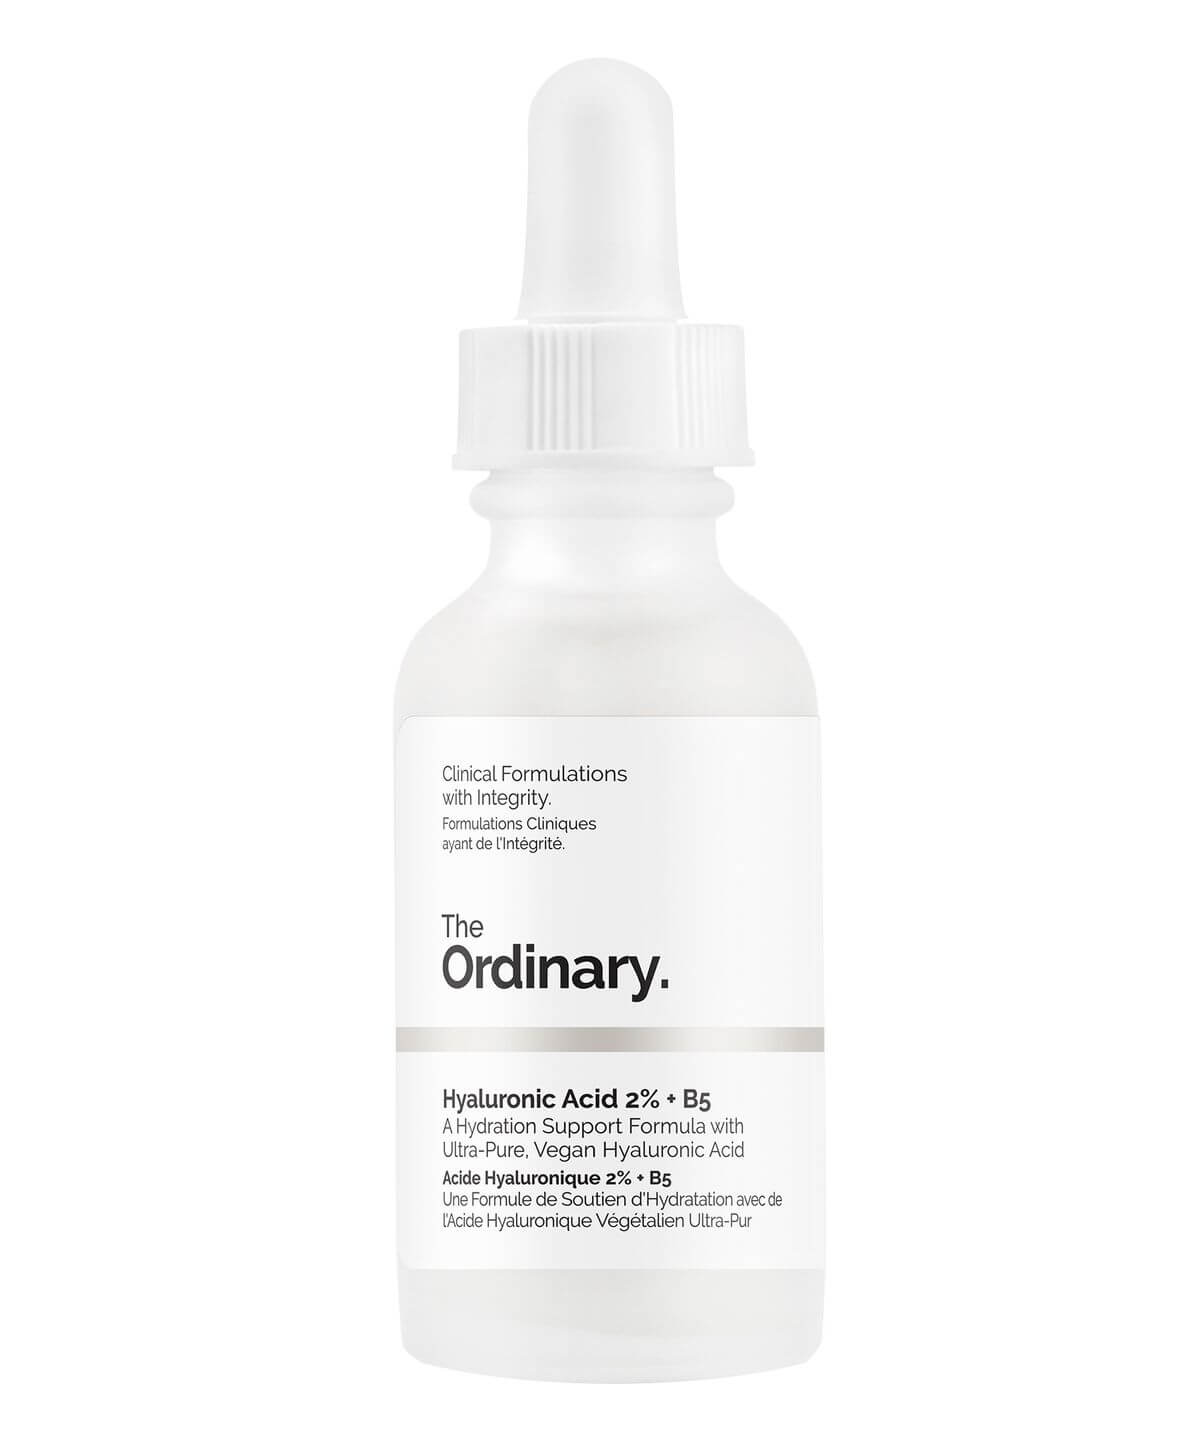 The Ordinary Hyaluronserum